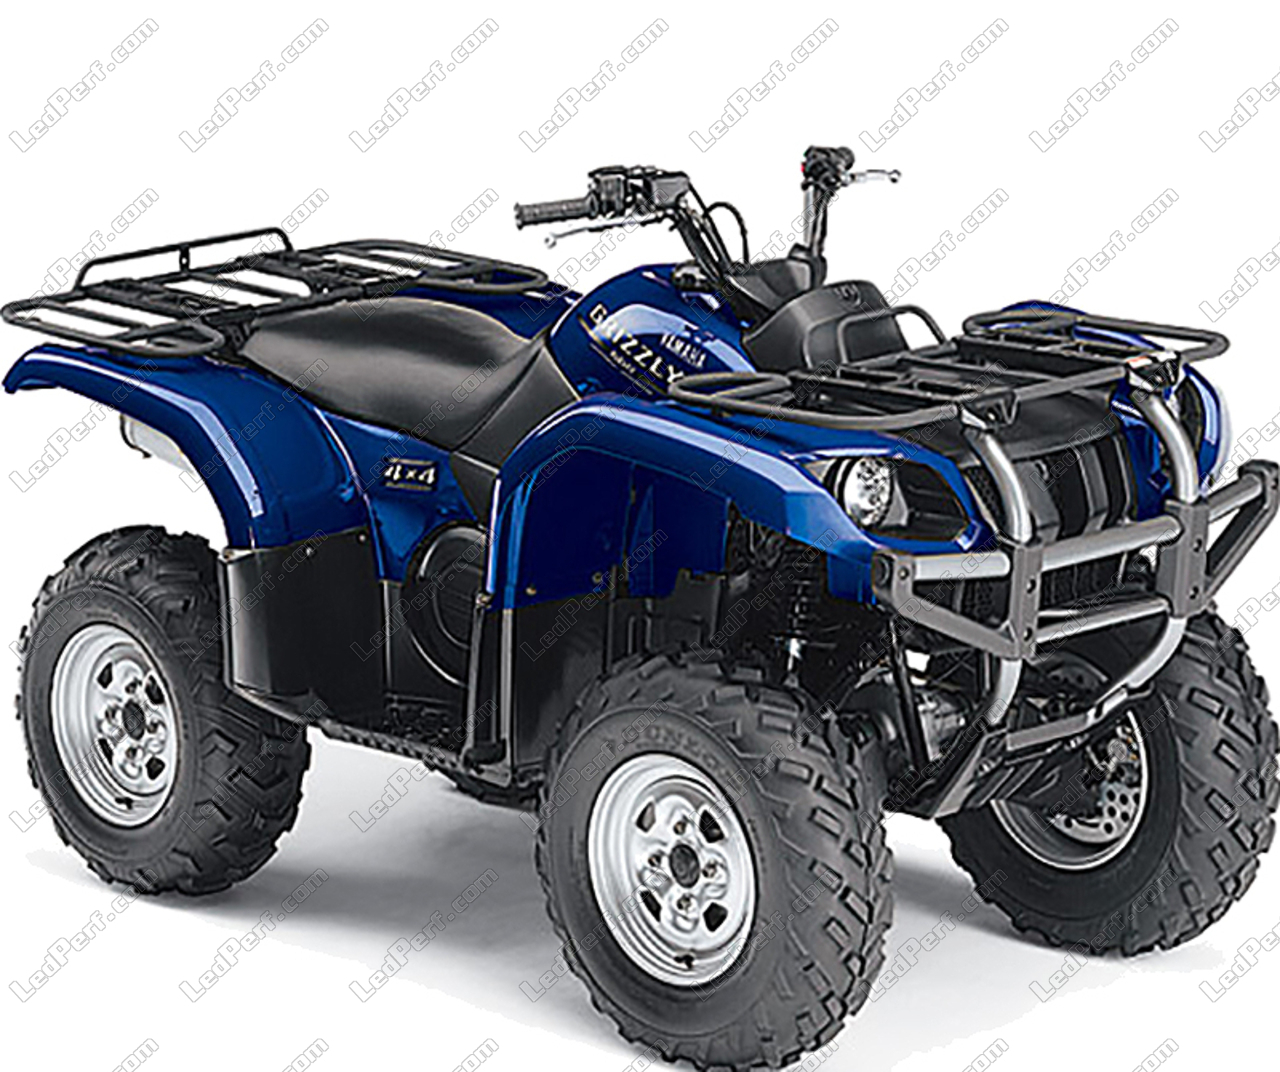 Yamaha Grizzly 660 >> Additional Led Headlights For Atv Yamaha Yfm 660 Grizzly Long Range